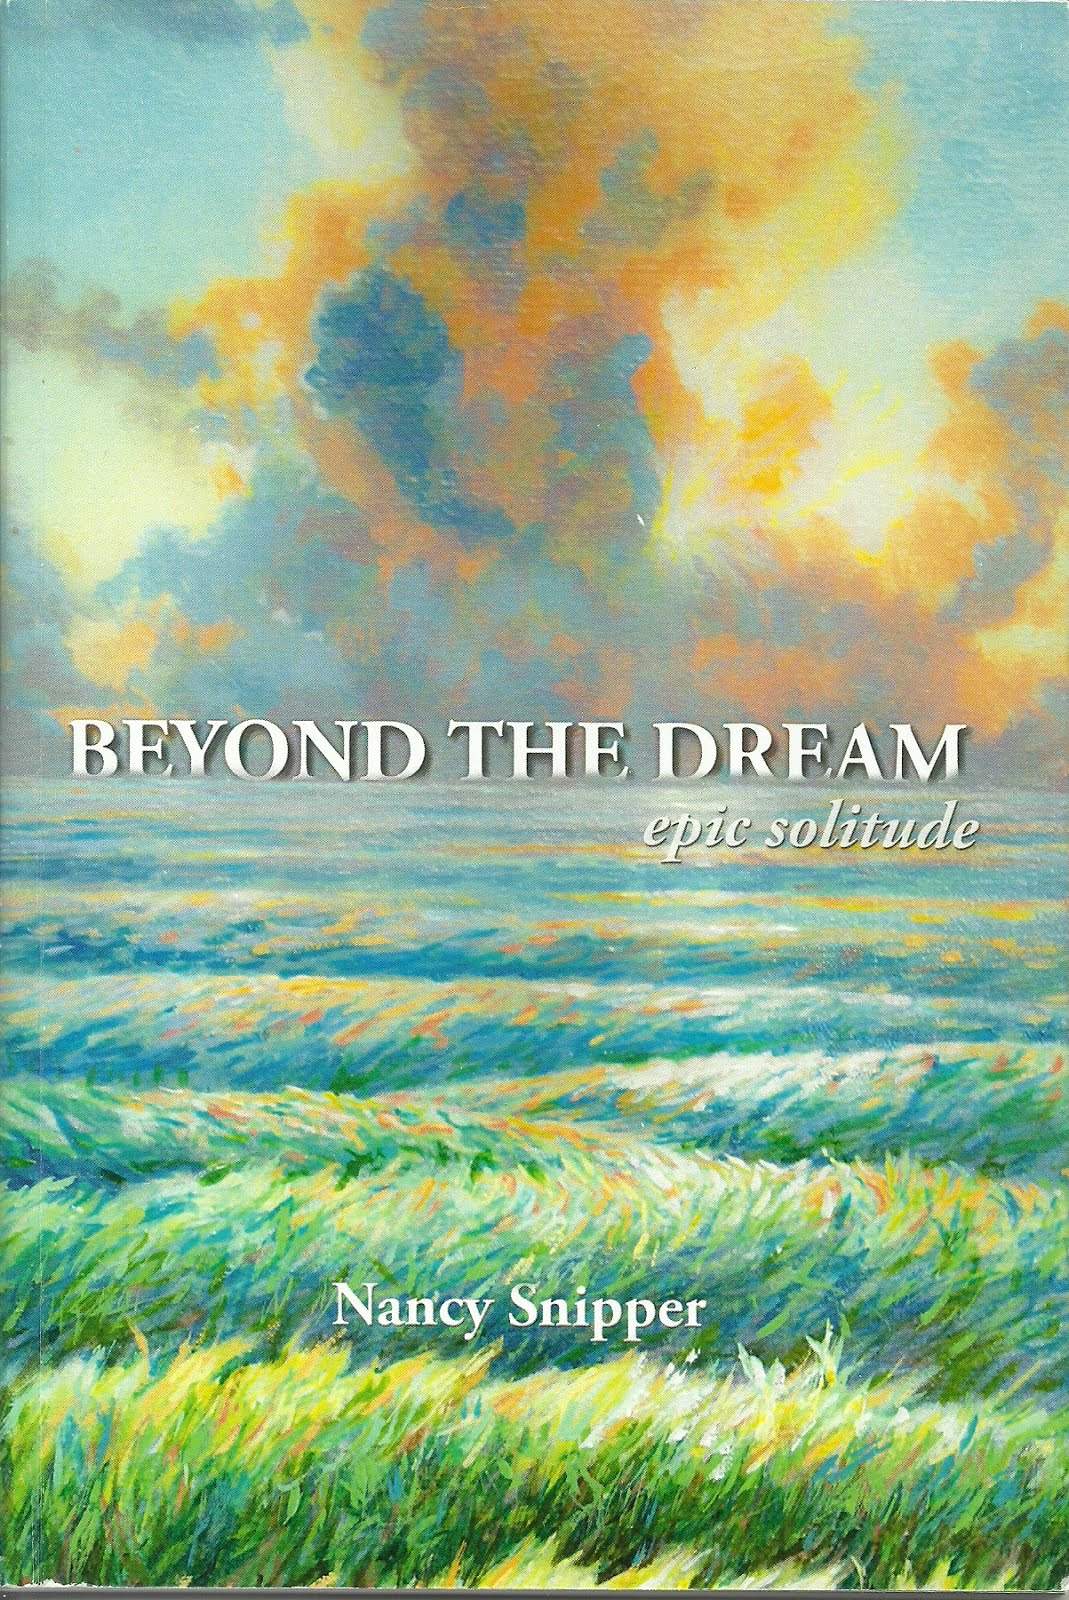 BEYOND THE DREAM: EPIC SOLITUDE